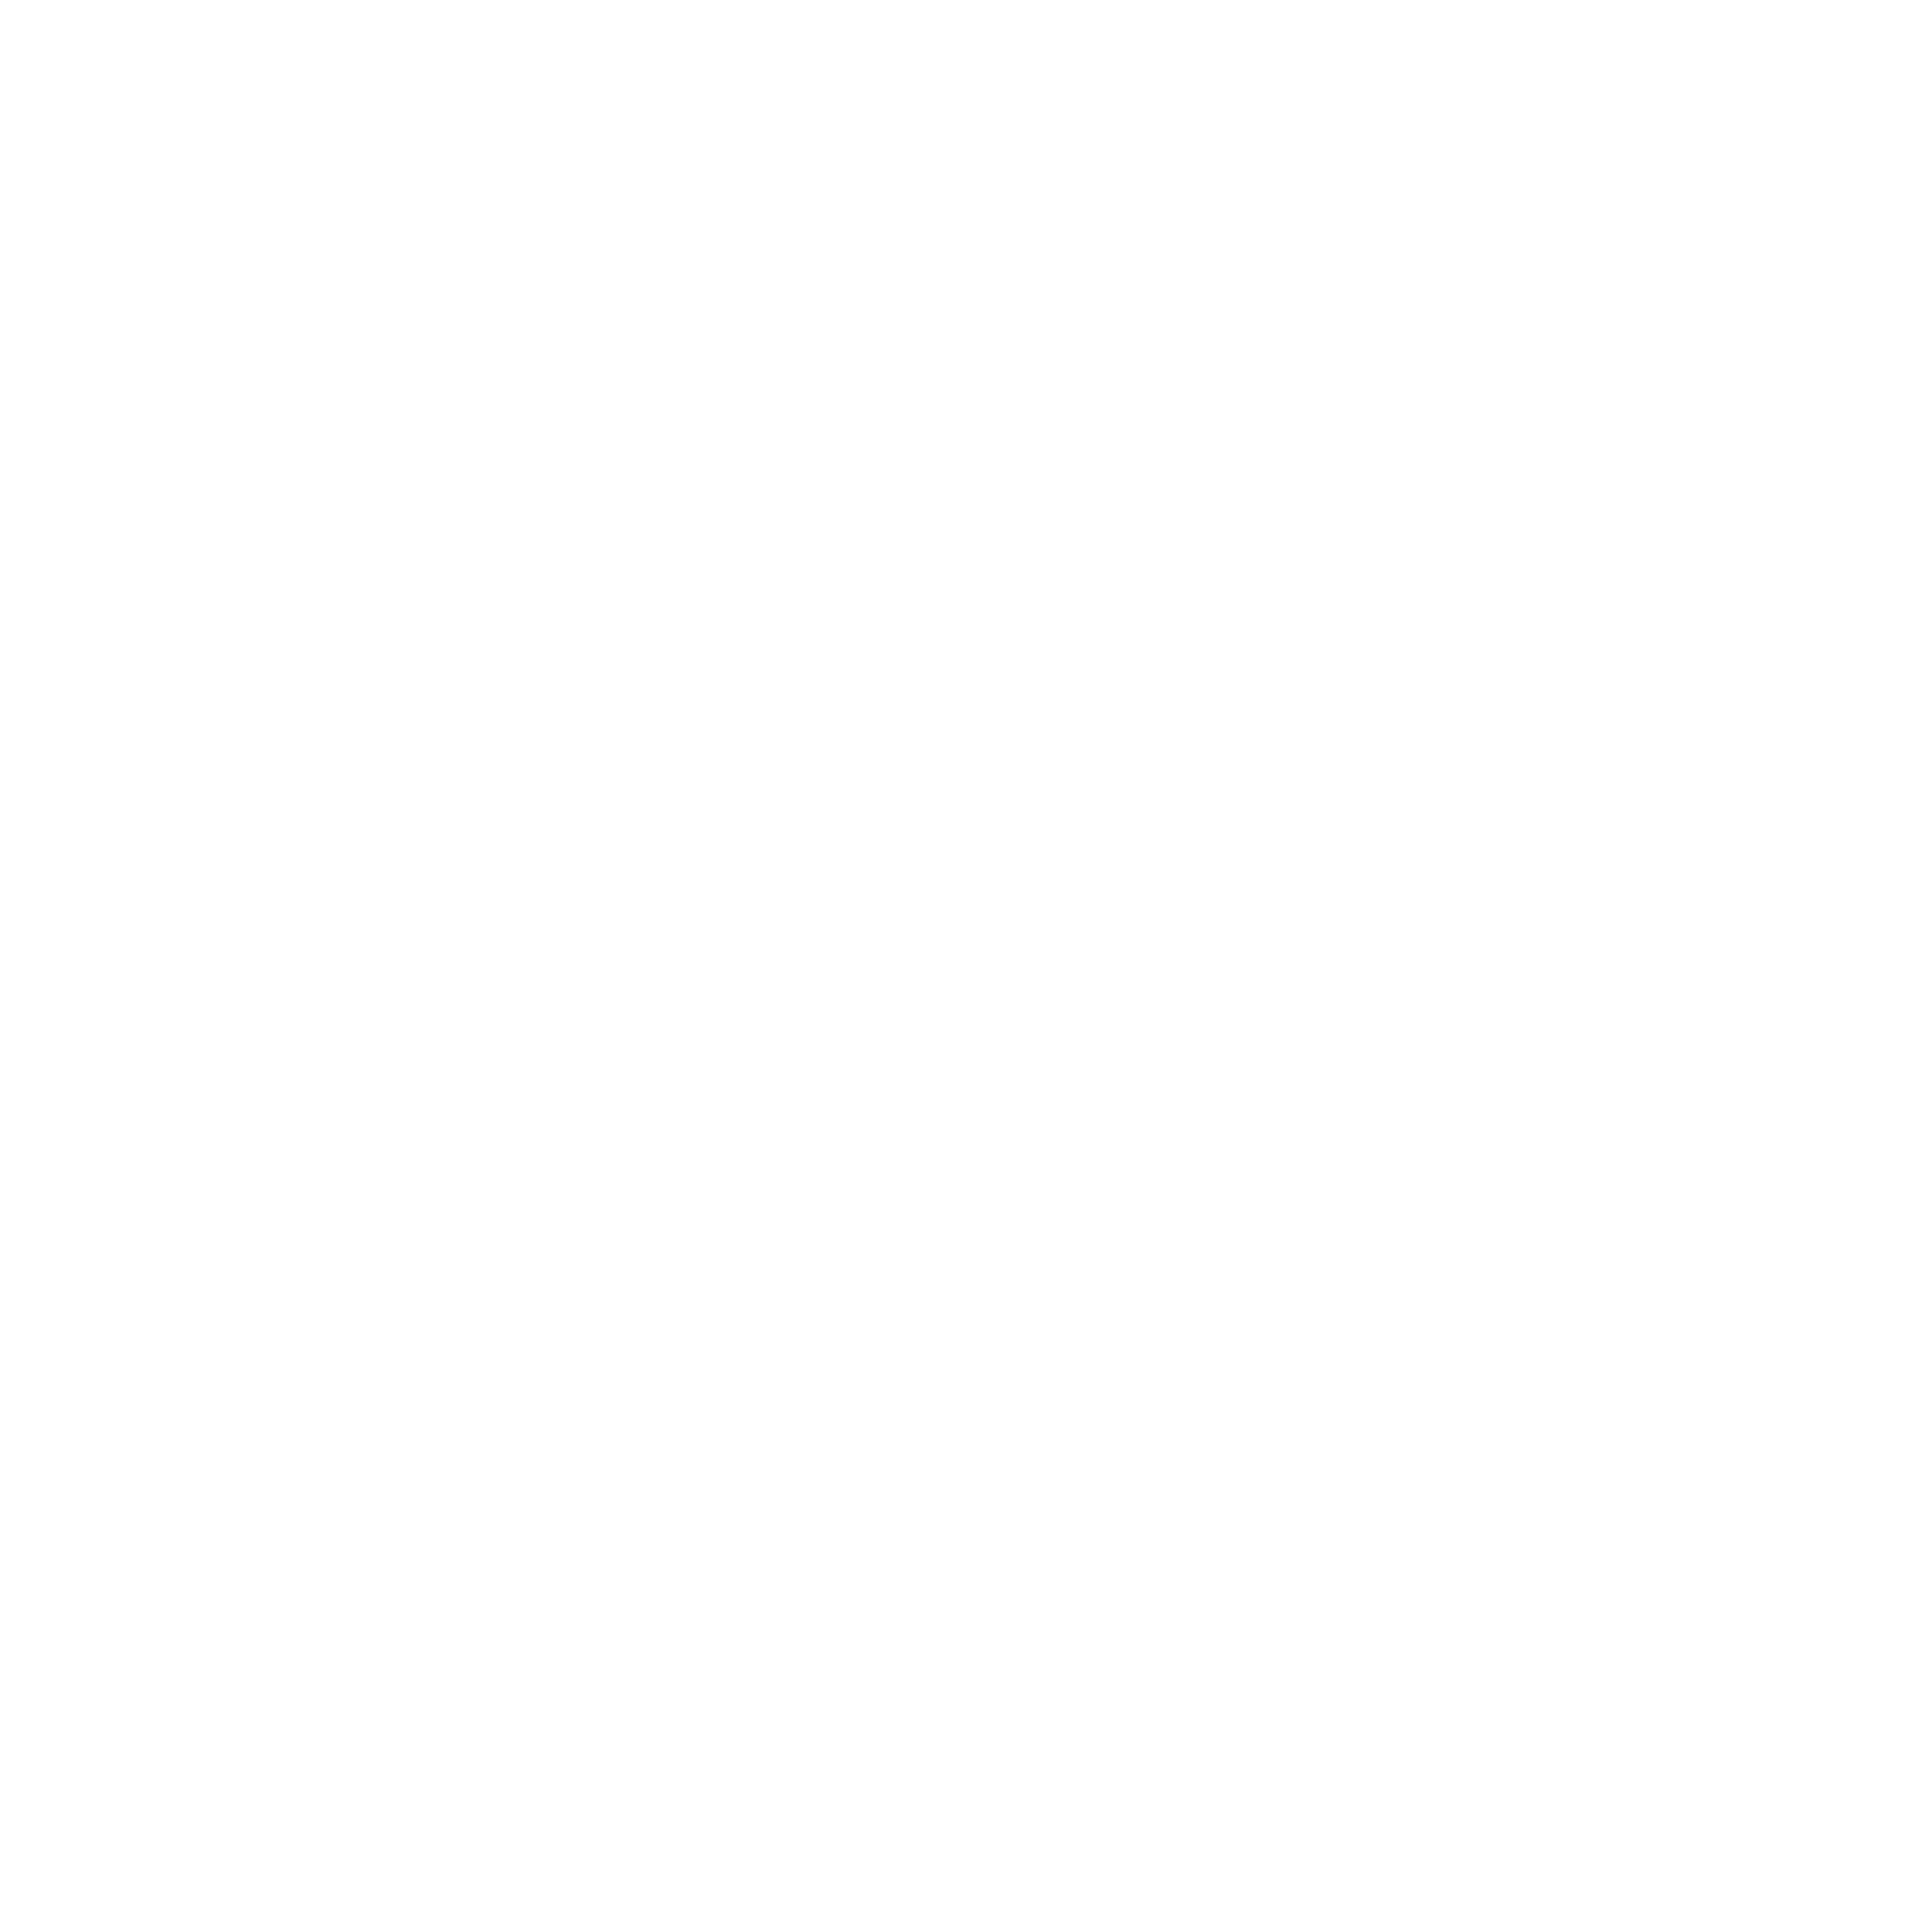 saladpoint-everplate-licensee-logo